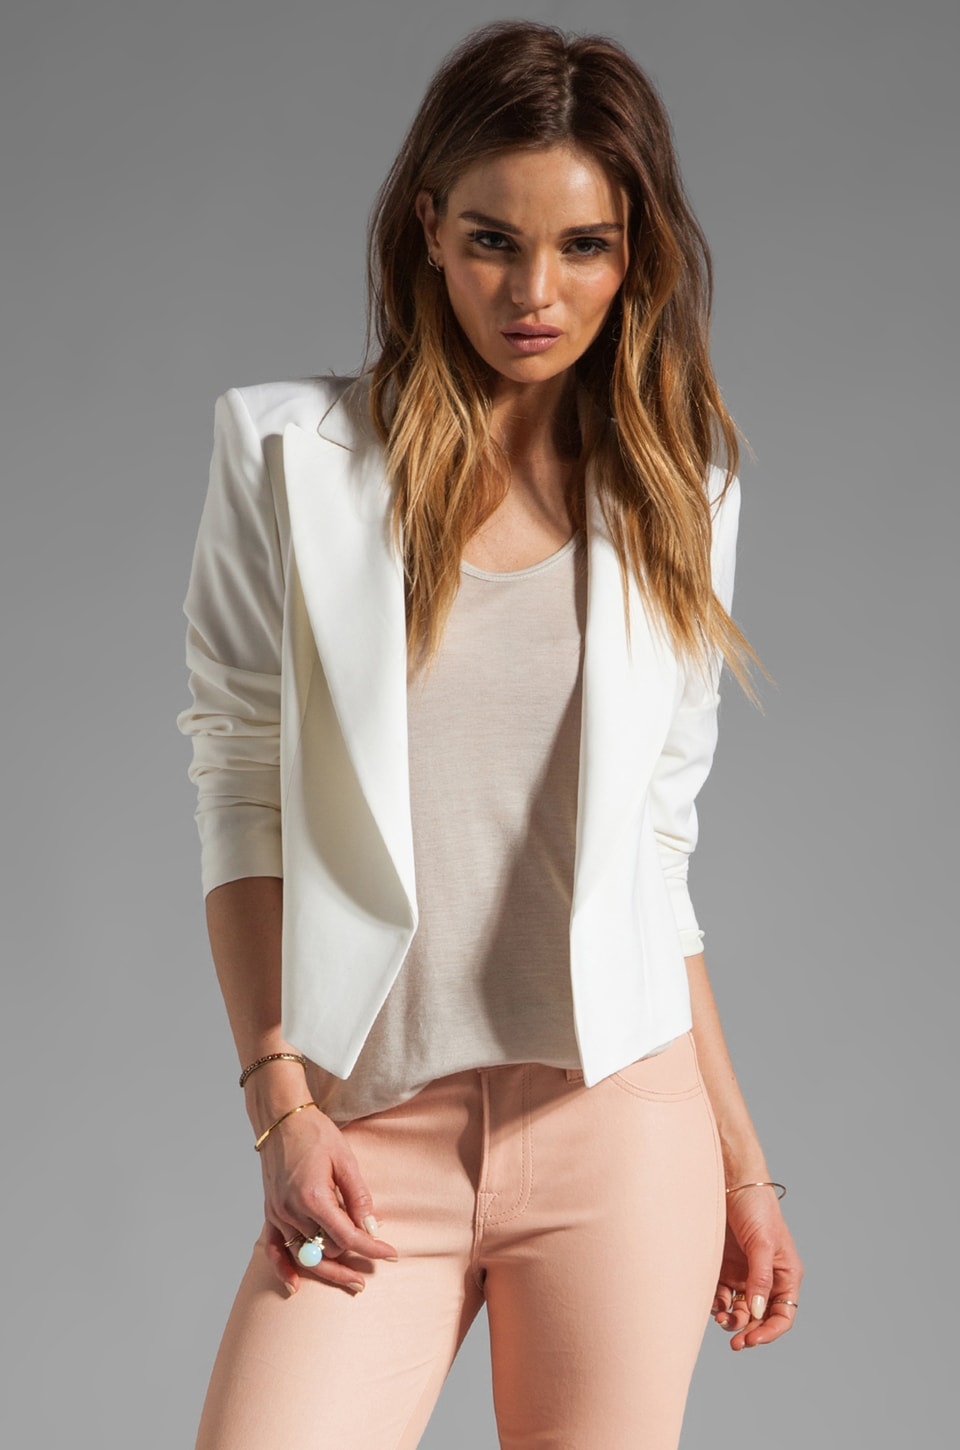 Theory Bistretch 2 Joji Twill Blazer in Caledon White